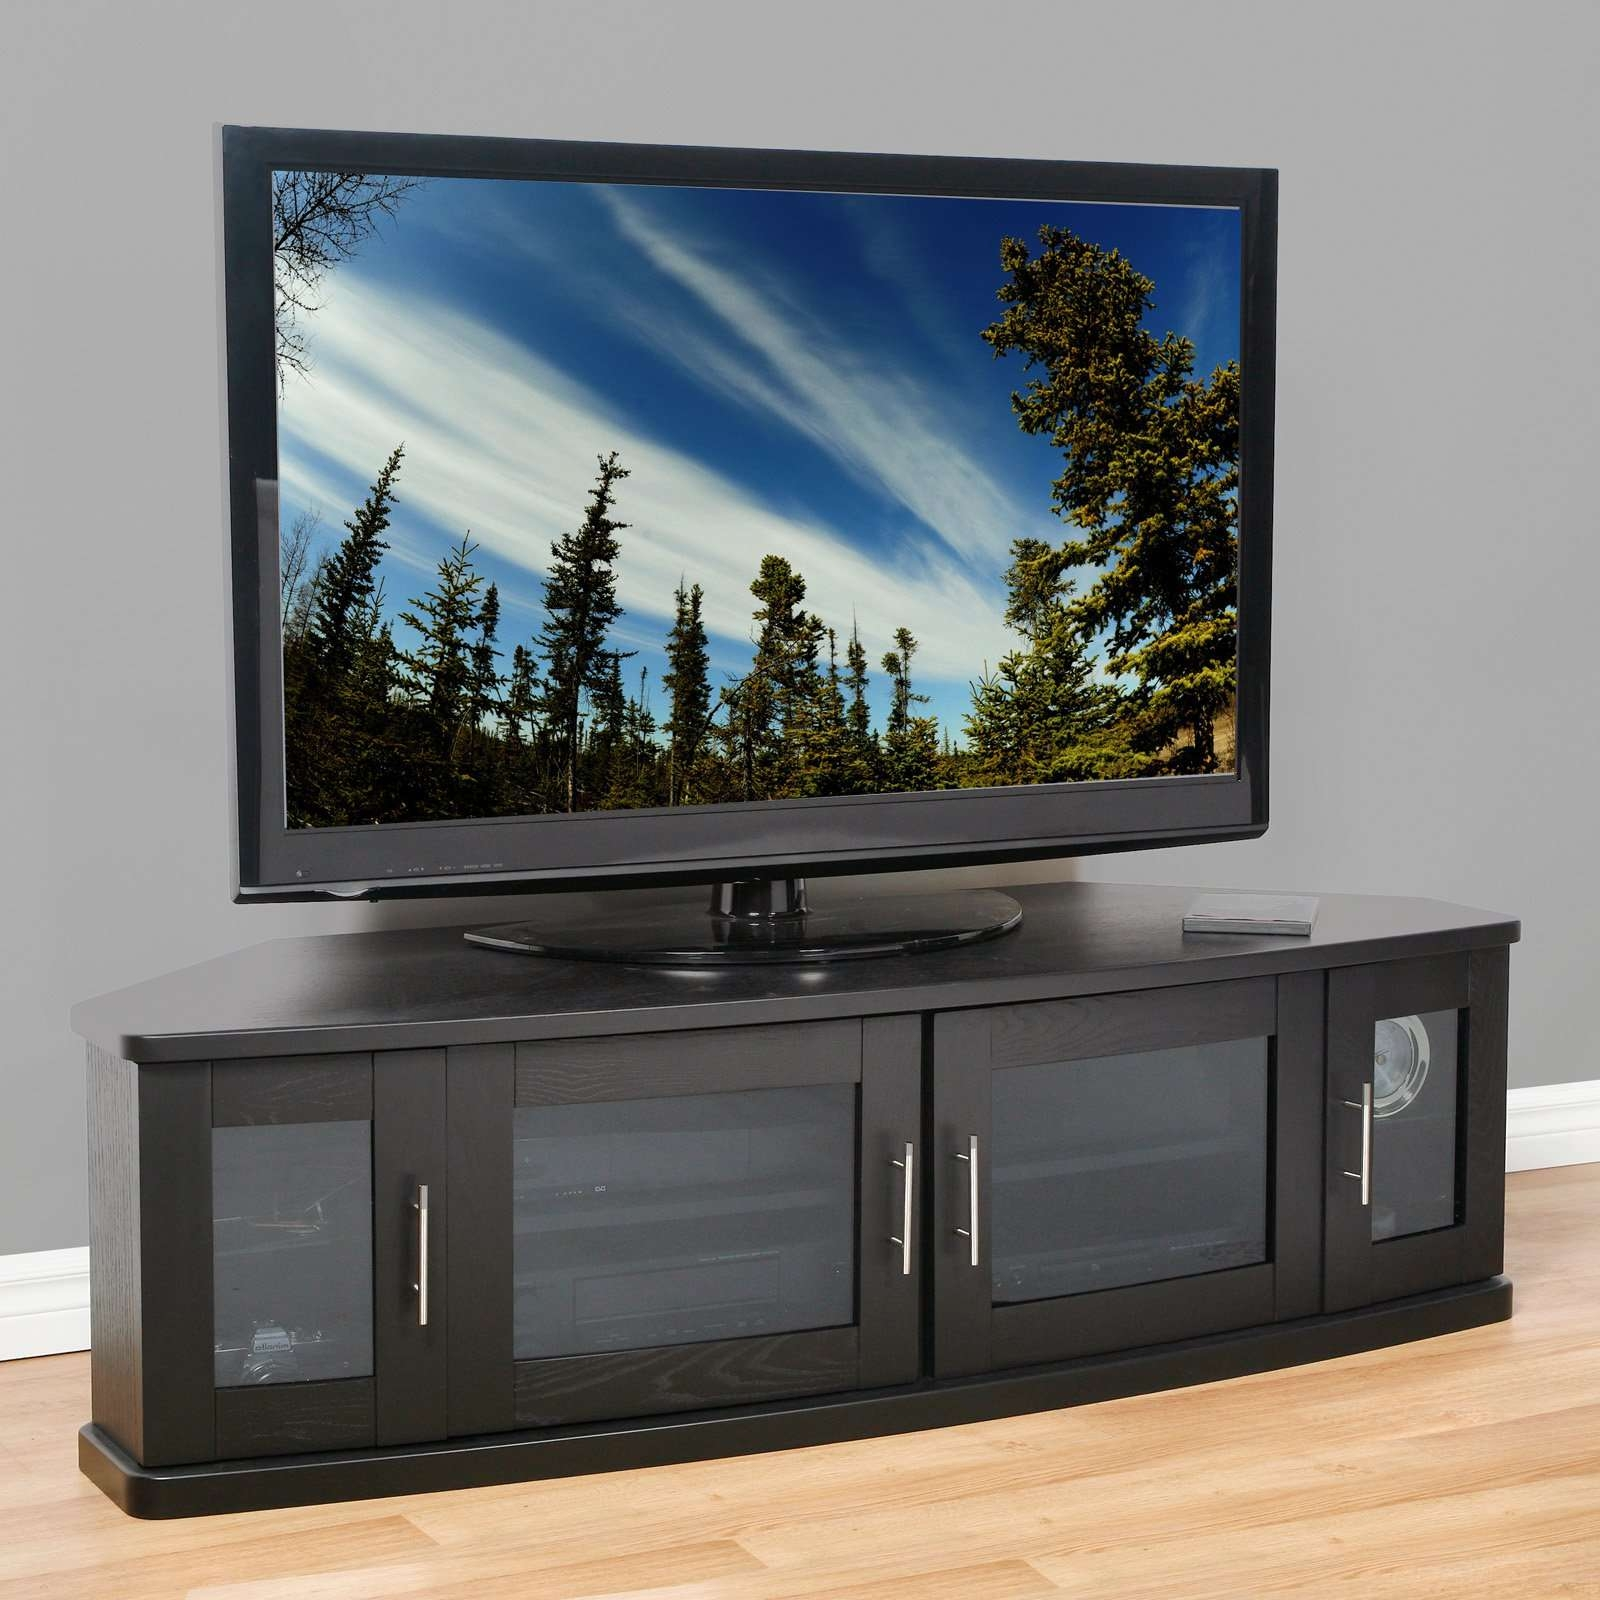 Corner Tv Stand For Inch Flat Screen Furnitures Fascinating On Regarding Corner Tv Stands For 60 Inch Flat Screens (View 4 of 15)